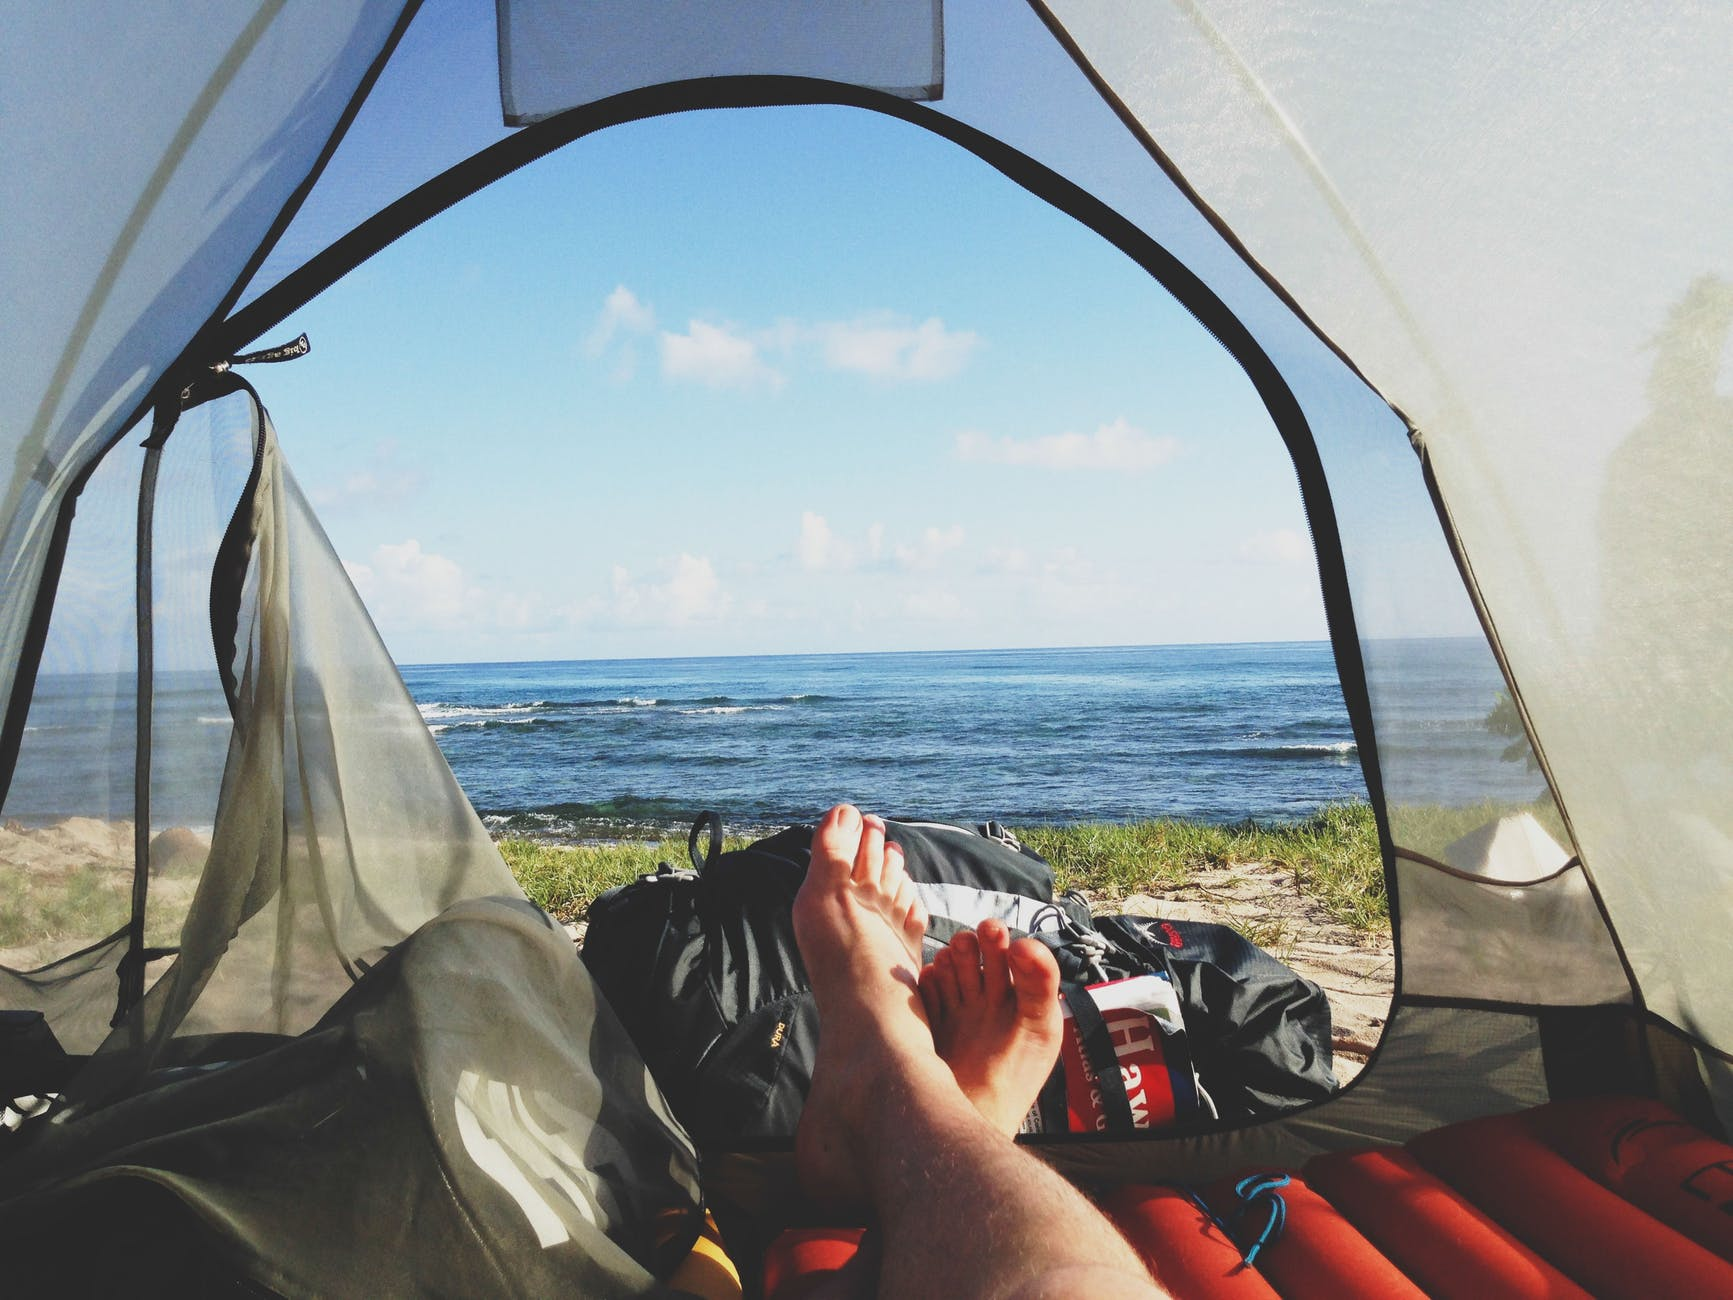 Ideas For A Quick Weekend Getaway